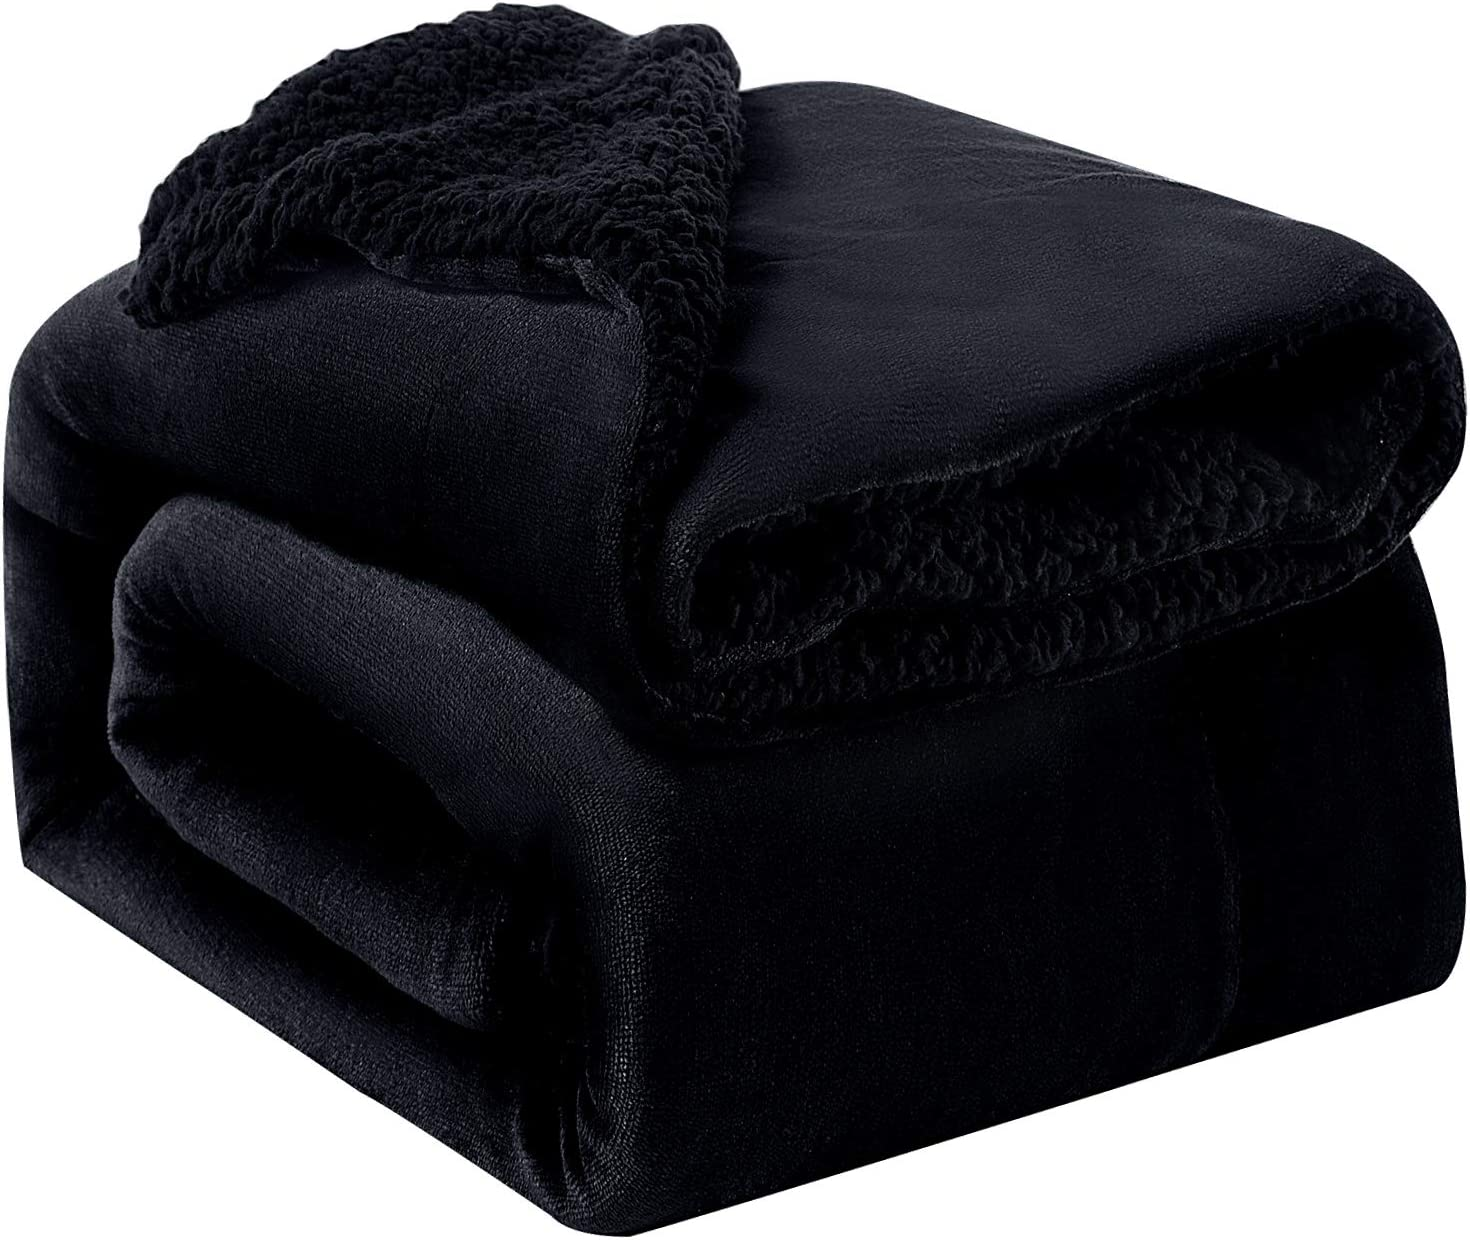 Bedsure Sherpa Fleece Blanket Twin Size Black Plush Throw Blanket Fuzzy Soft Blanket Microfiber